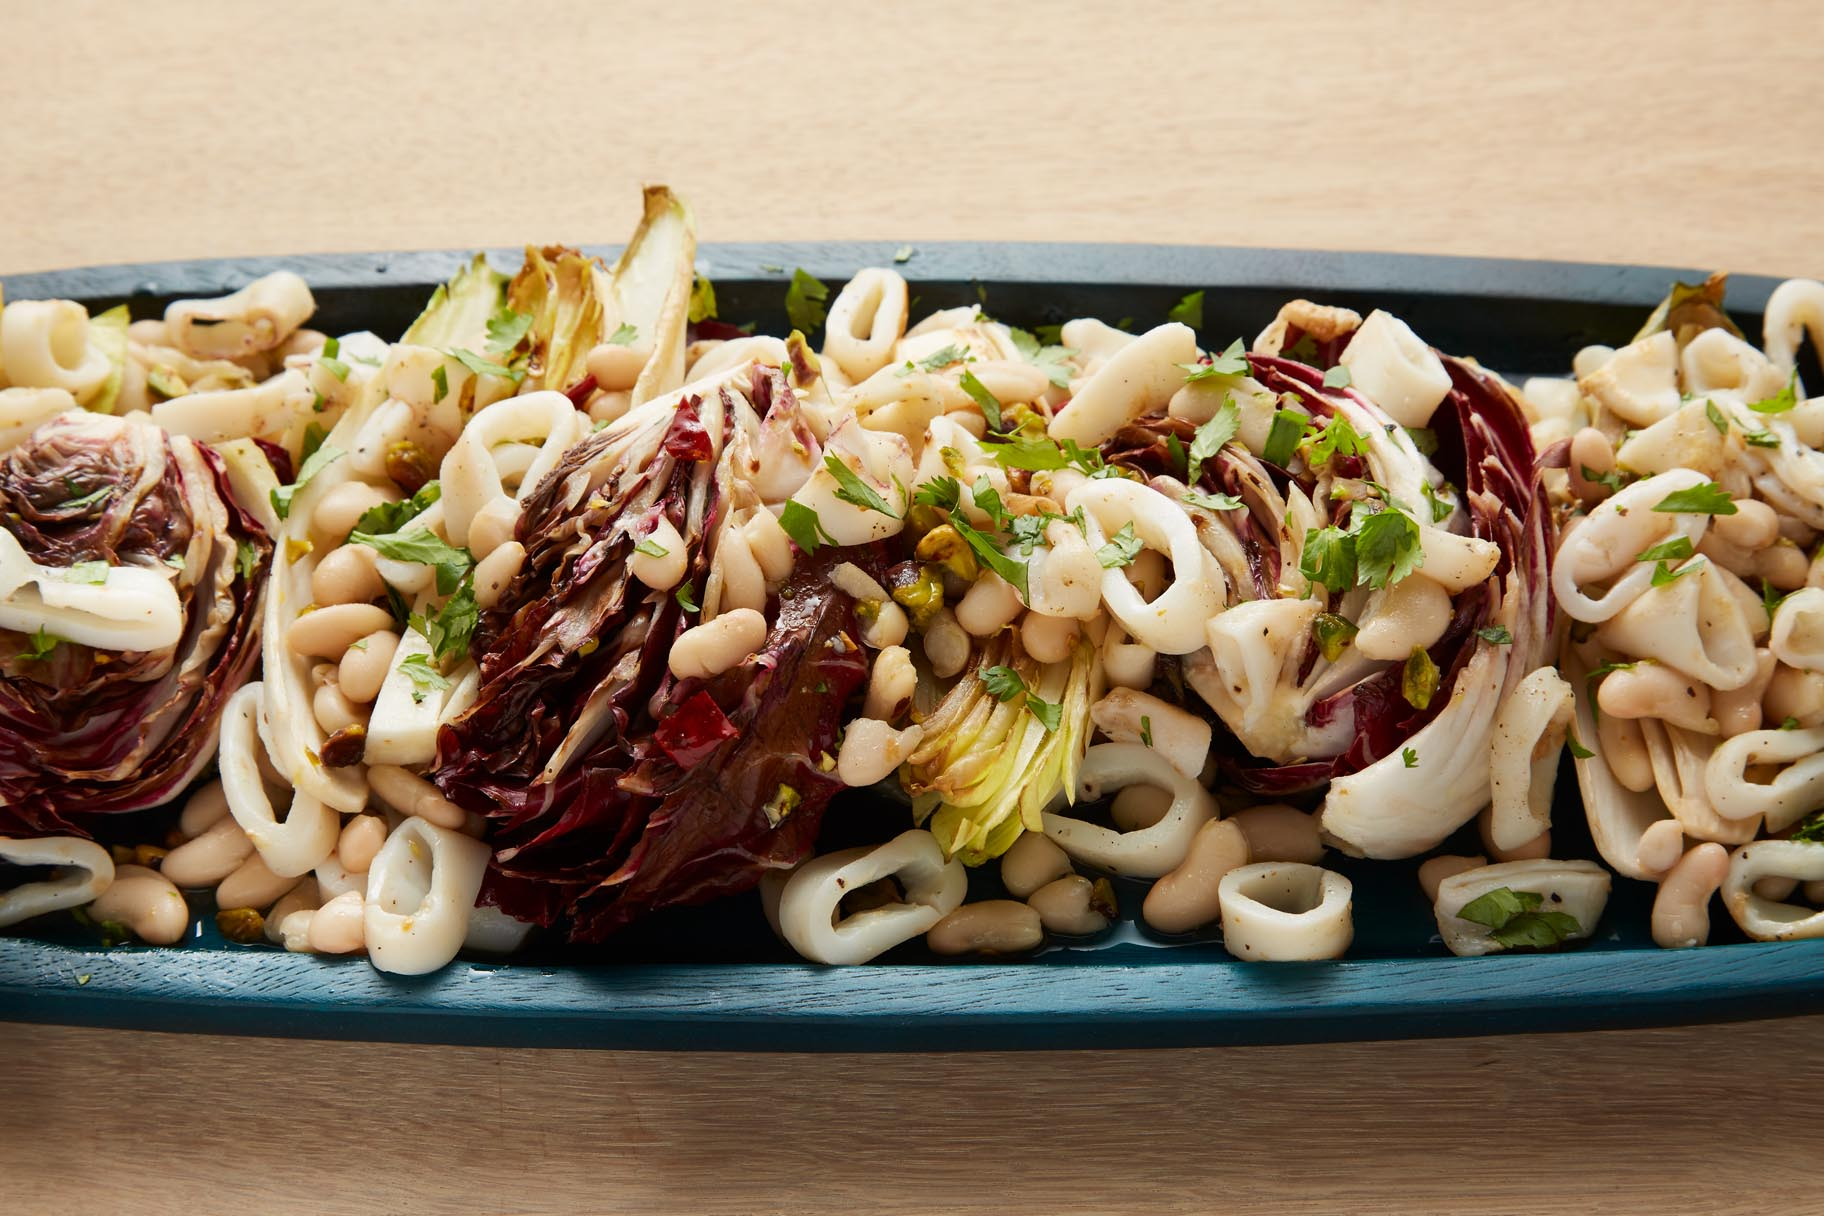 Grilled Calamari, Radicchio and Endive Salad